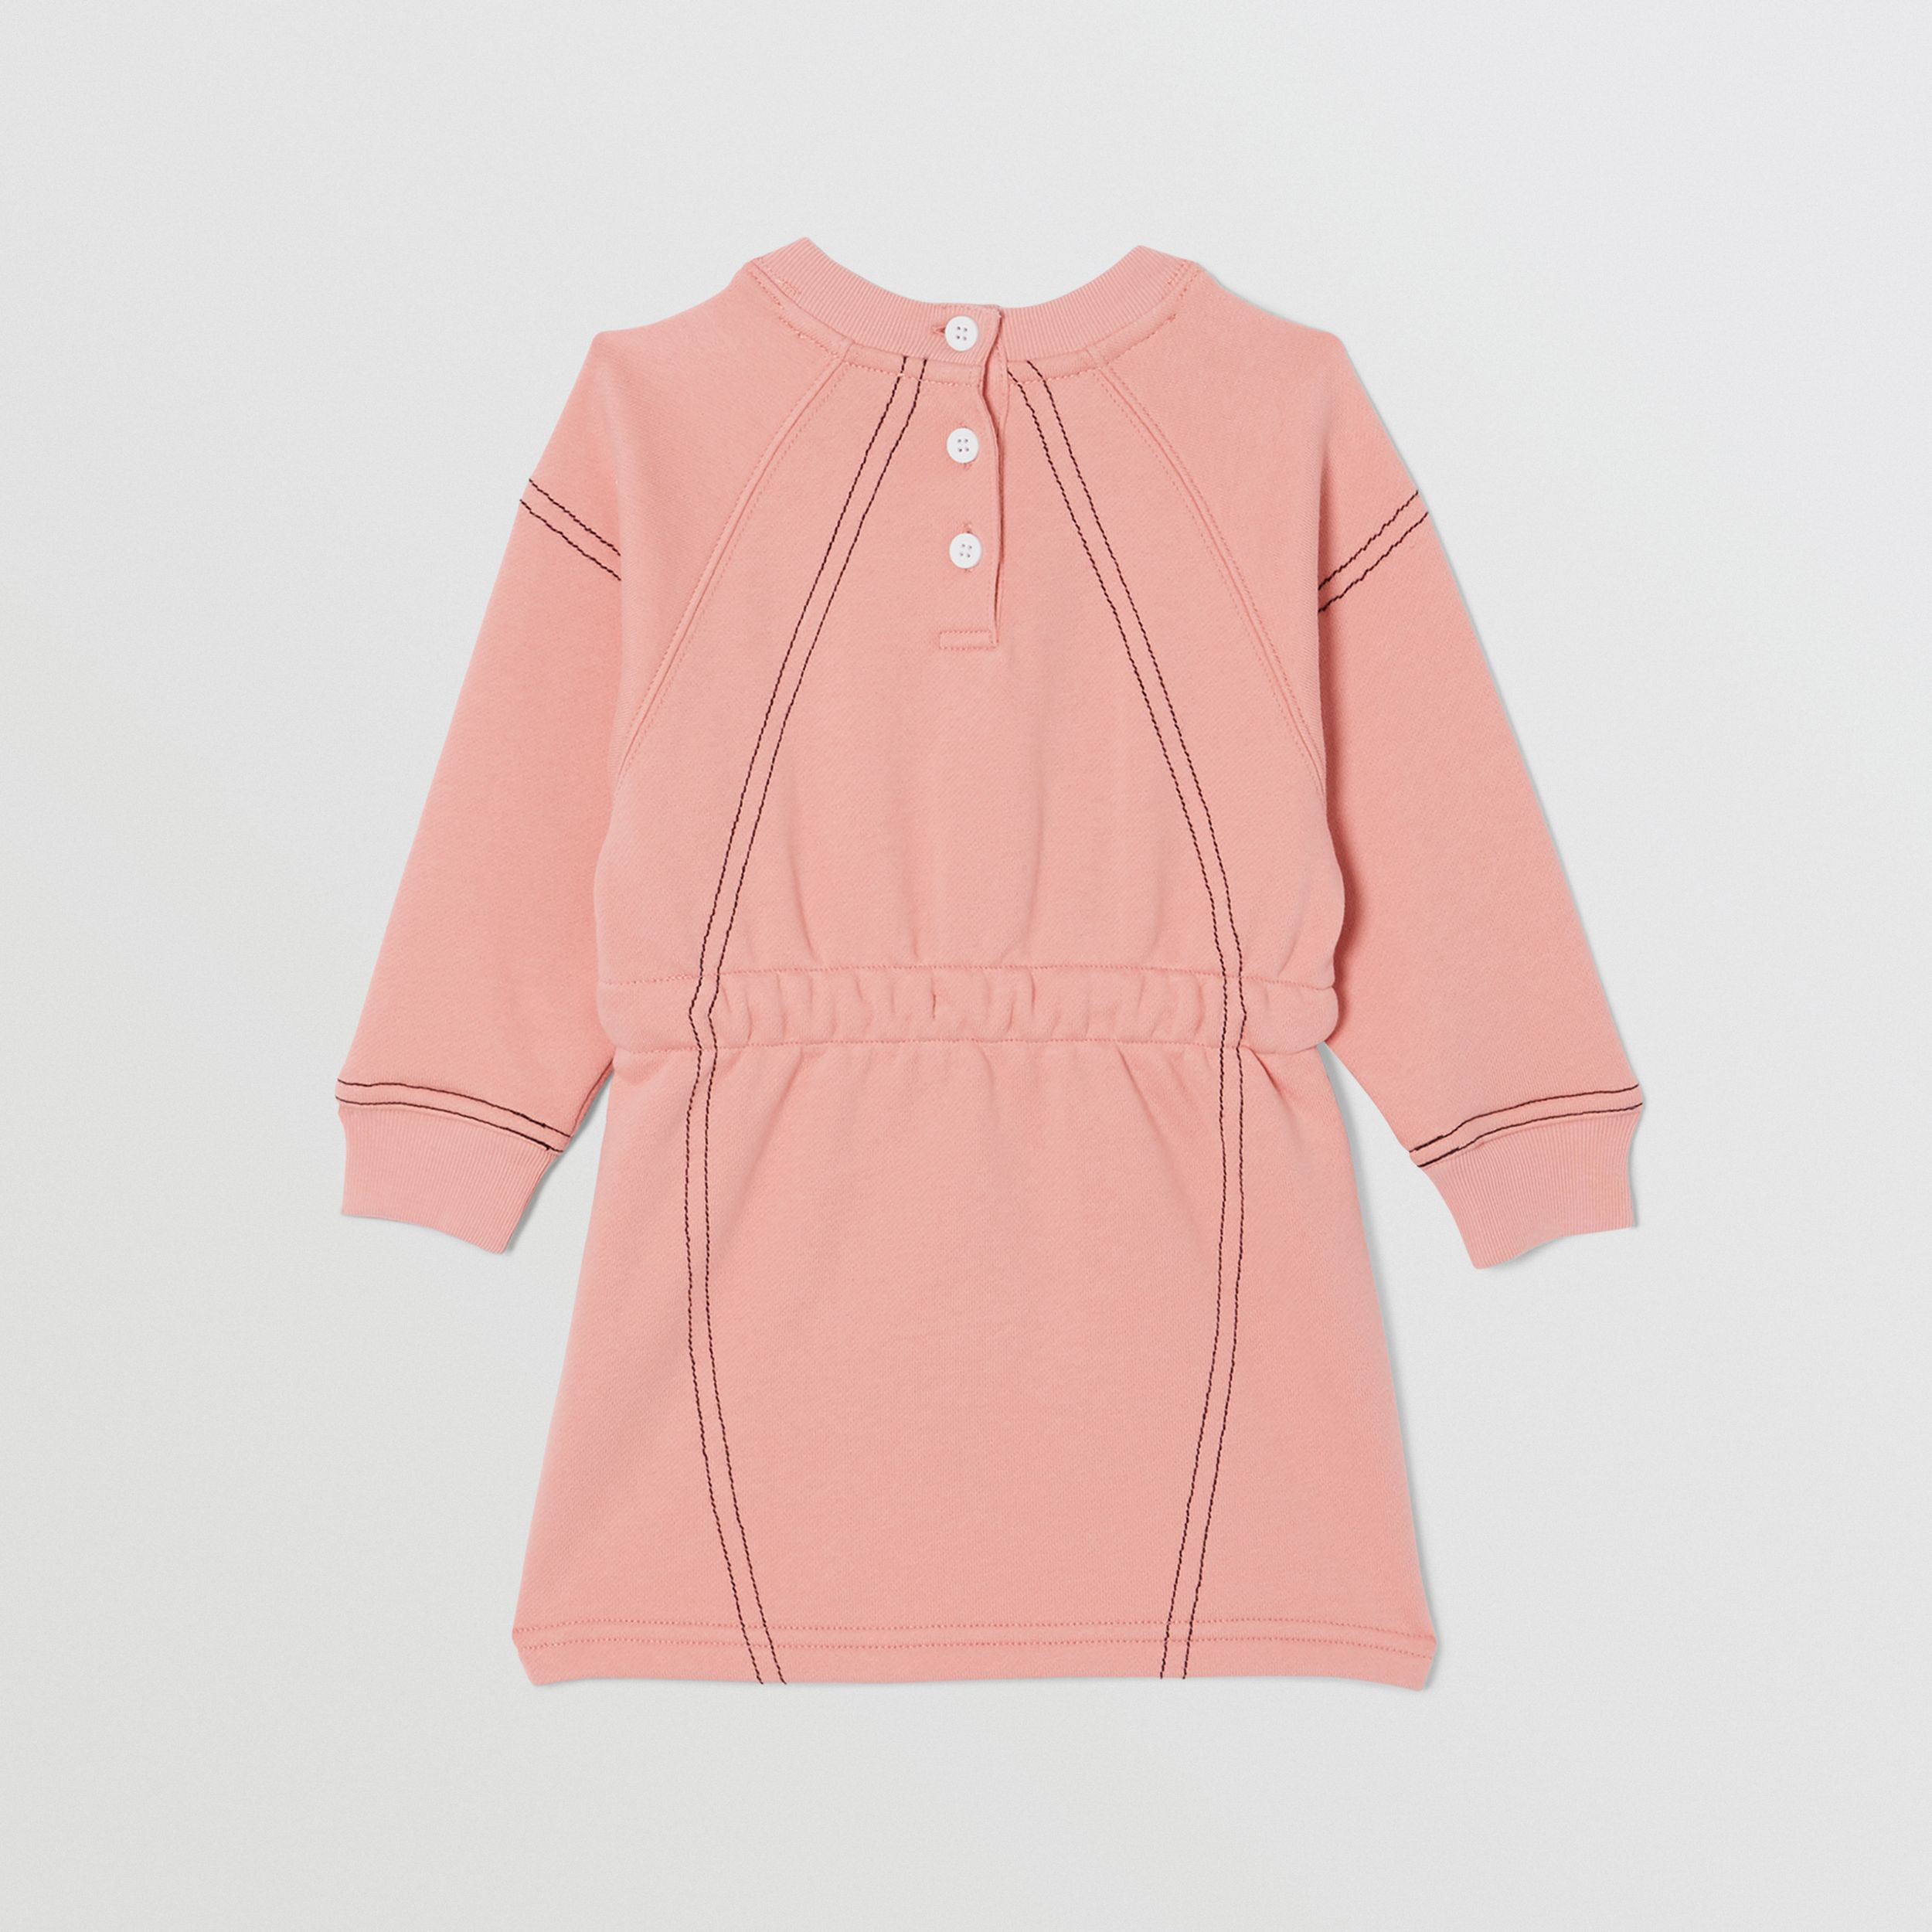 Logo Print Cotton Sweater Dress in Peach - Children | Burberry Canada - 4